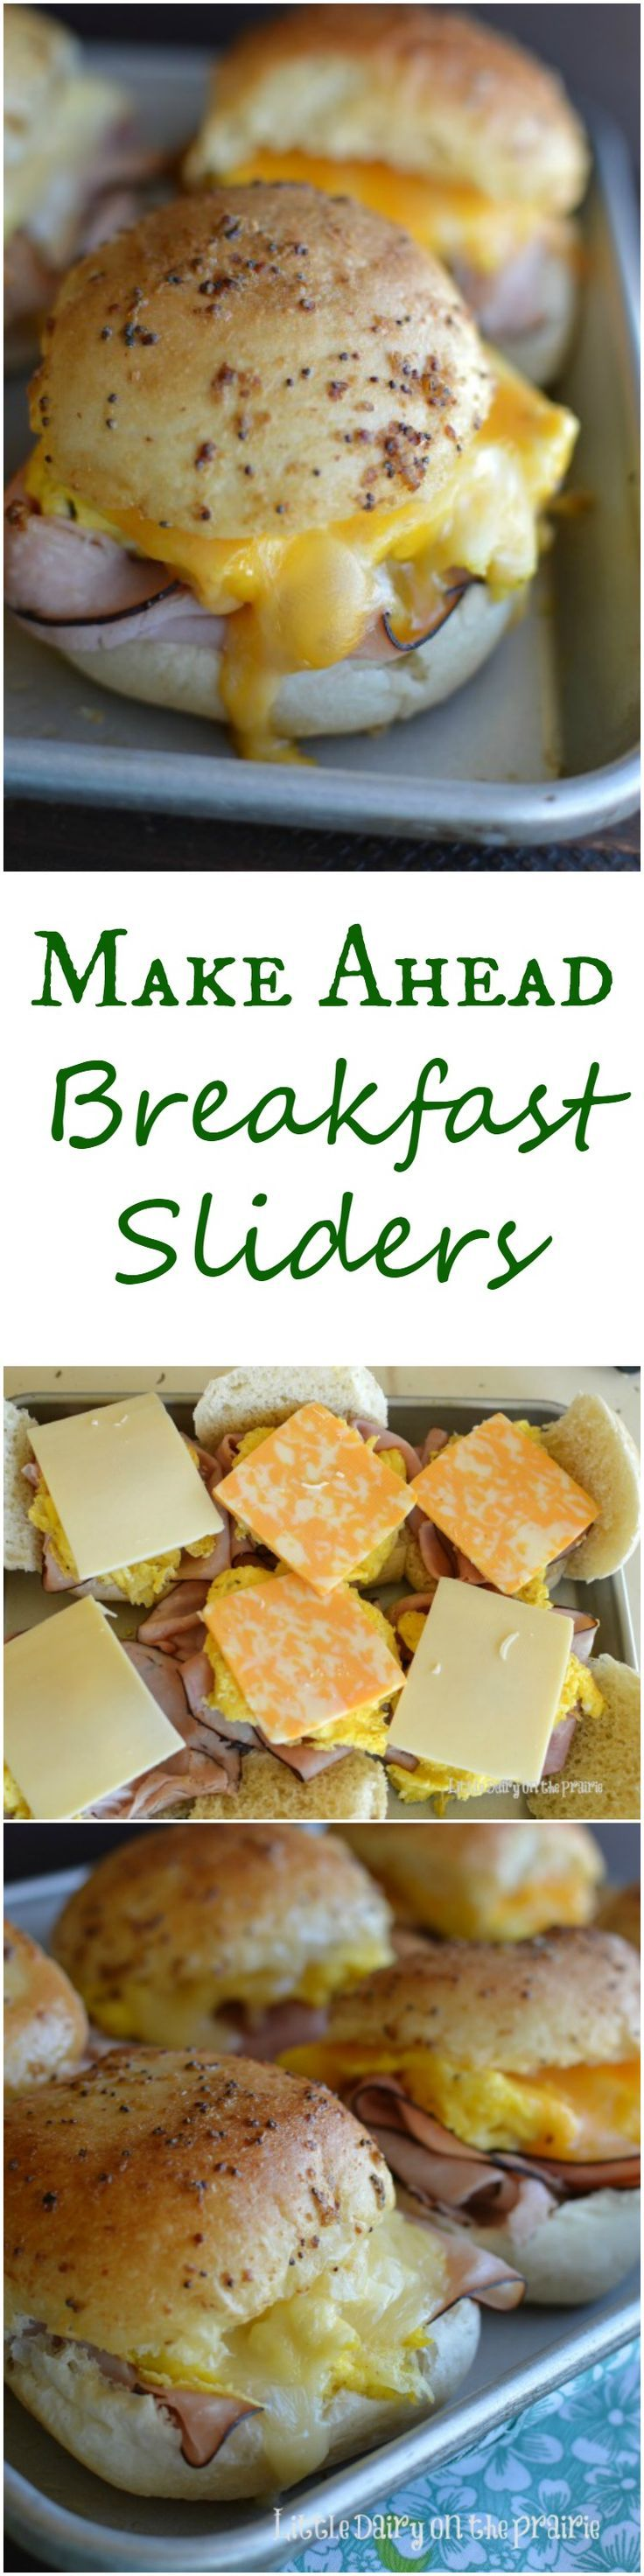 Make Ahead Breakfast Sliders all slathered in melted mustard butter, packed with gooey melted cheese sandwiched between a toasty roll is irresistible! I love make ahead breakfast that's can easily be package for an on the go breakfast too!: